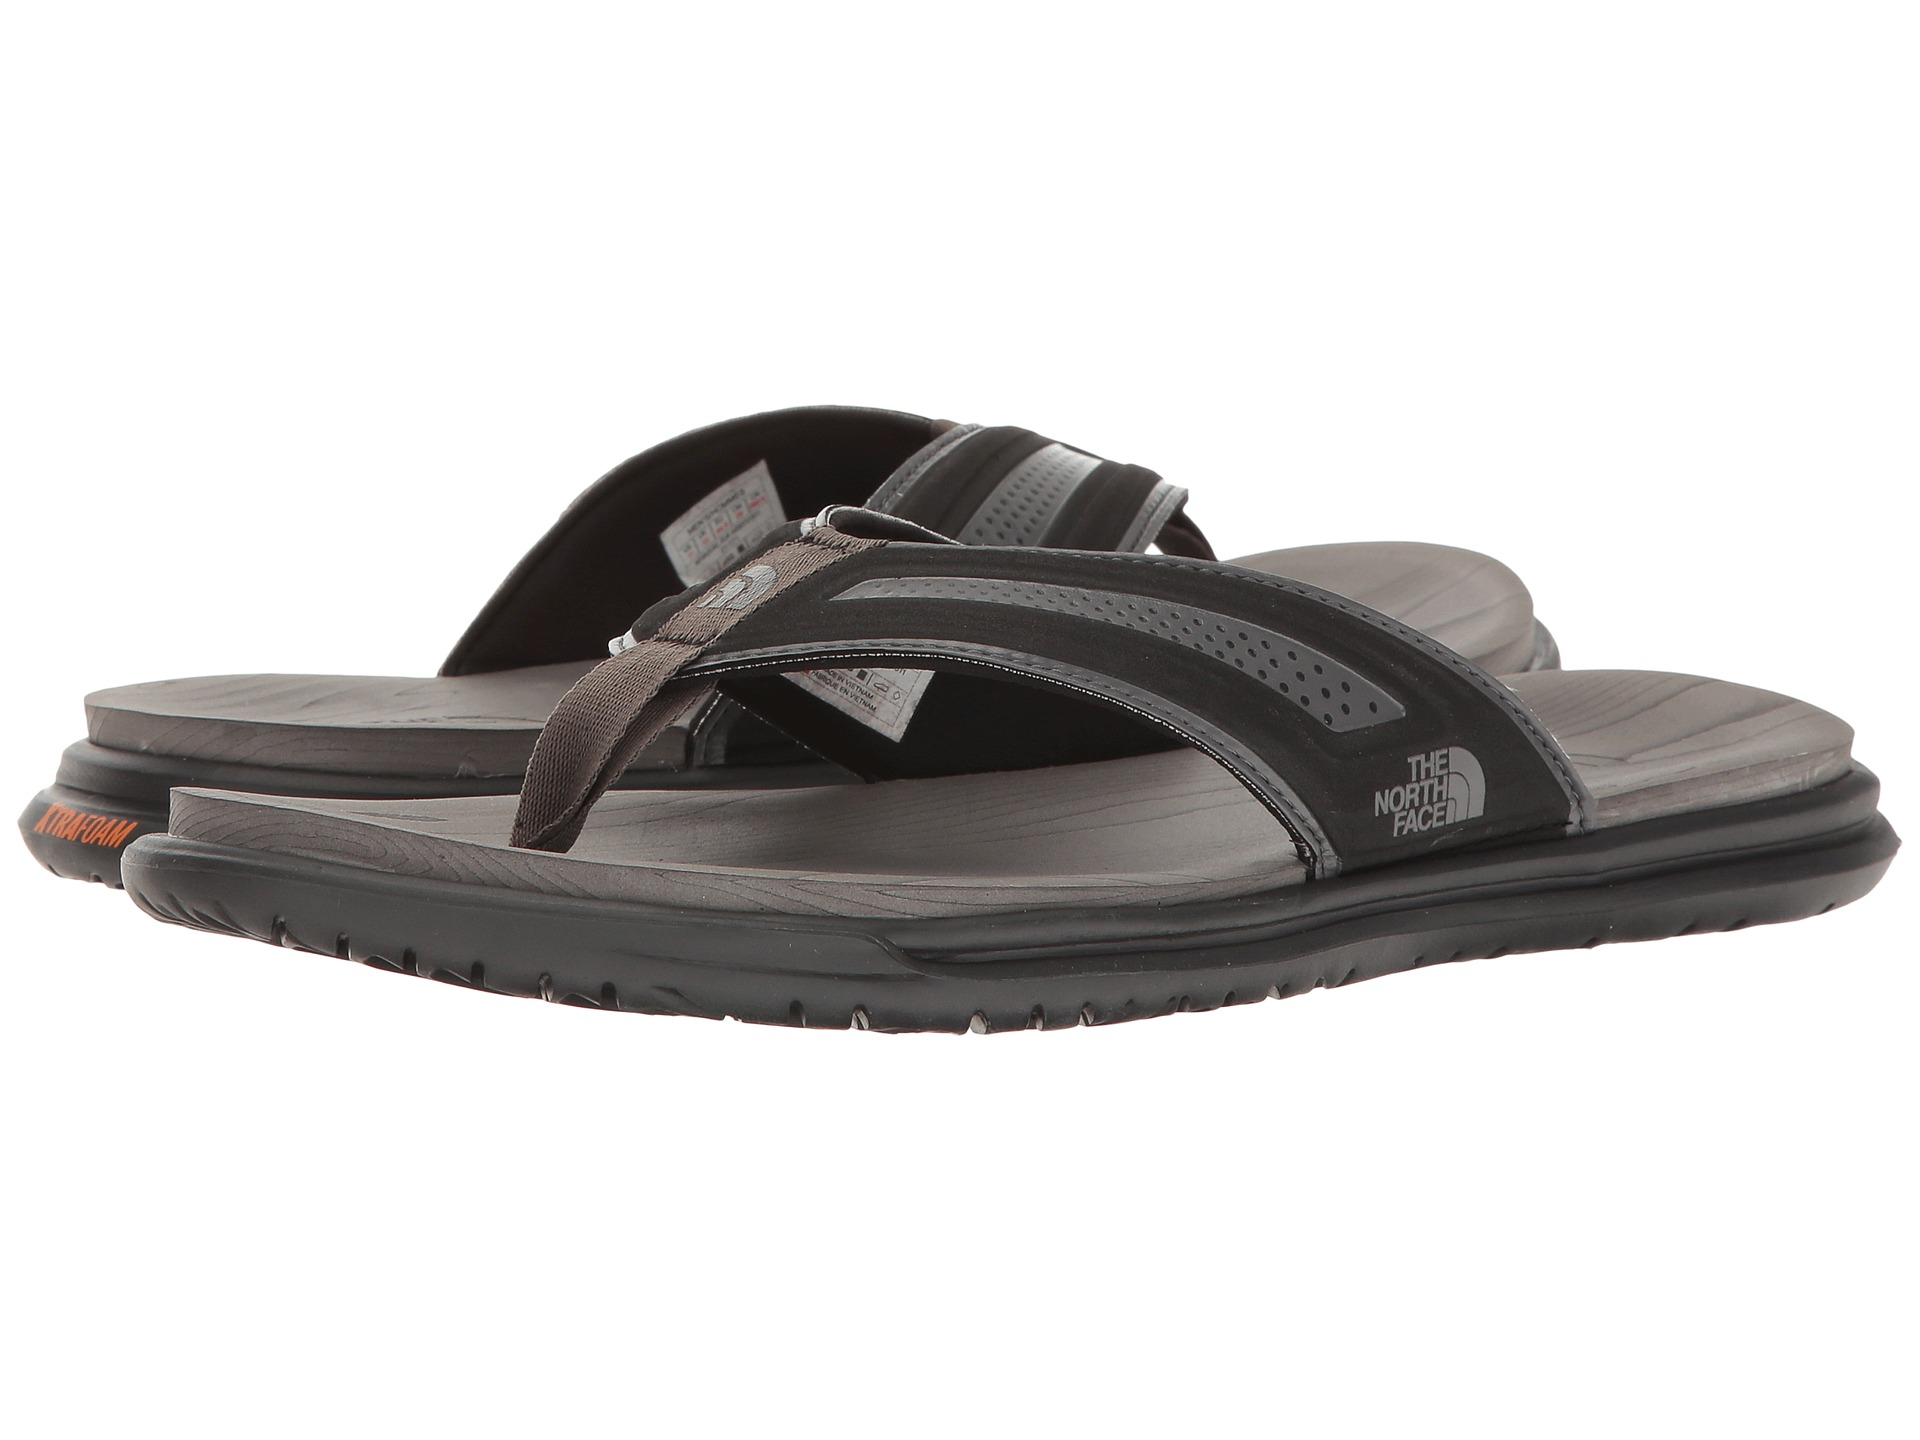 Shoes n sandals online - View More Like This The North Face Base Camp Xtrafoam Flip Flop